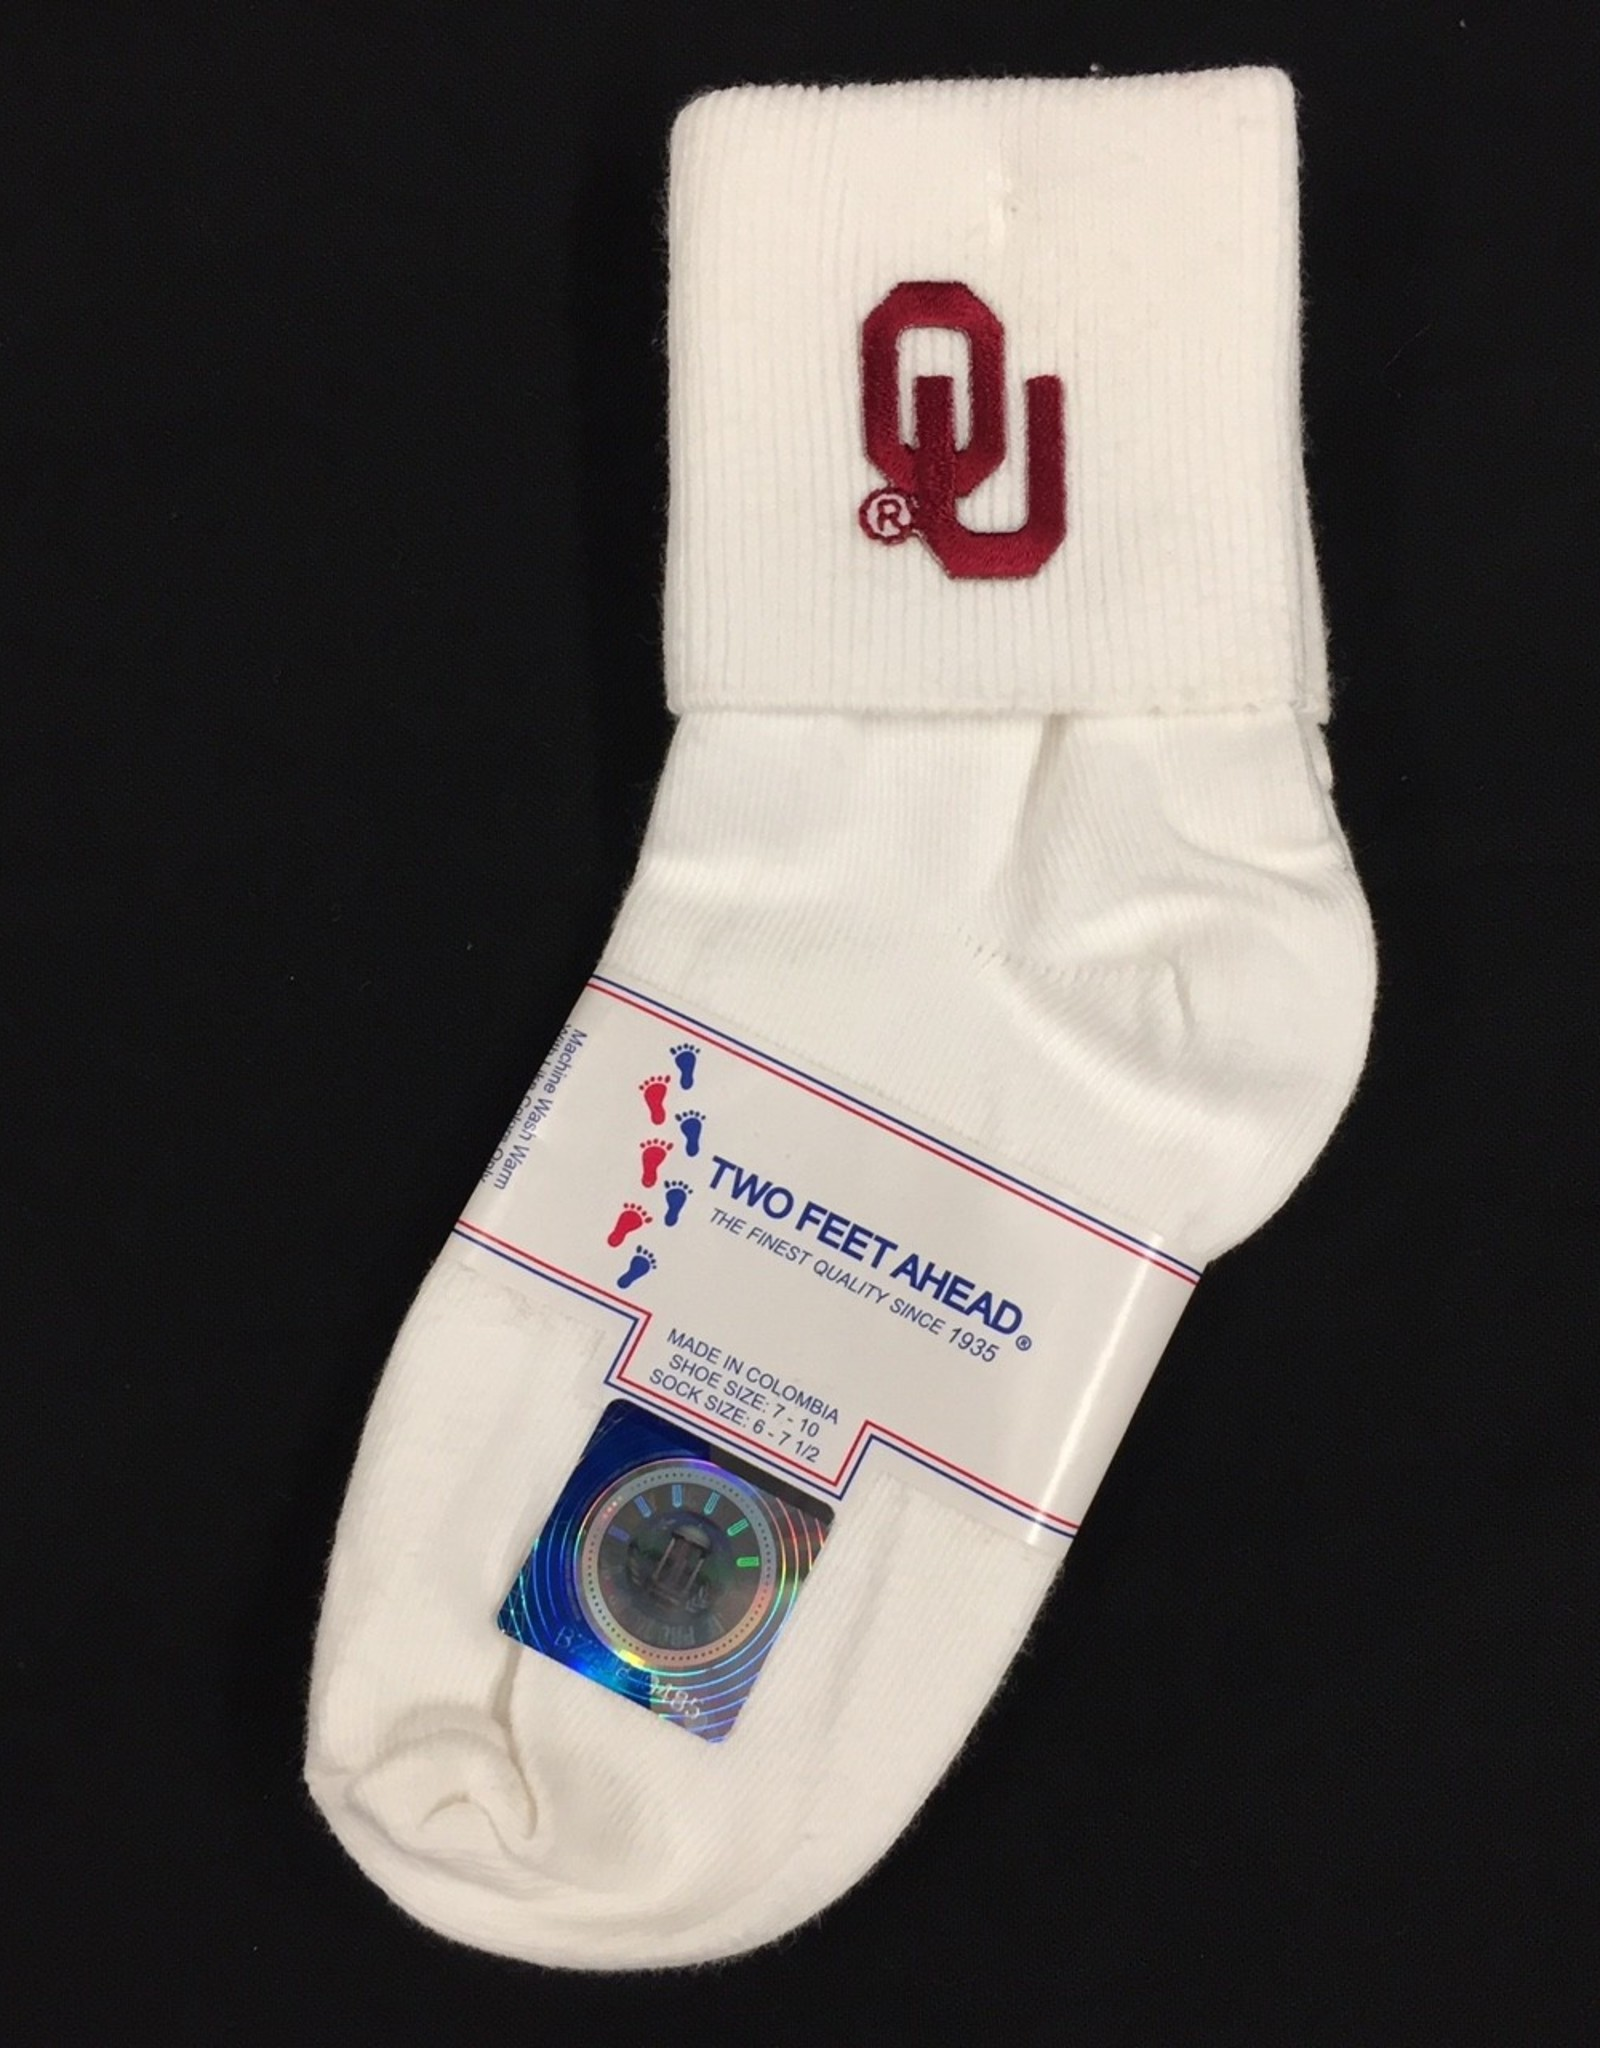 Two Feet Ahead OU White Anklet Sock